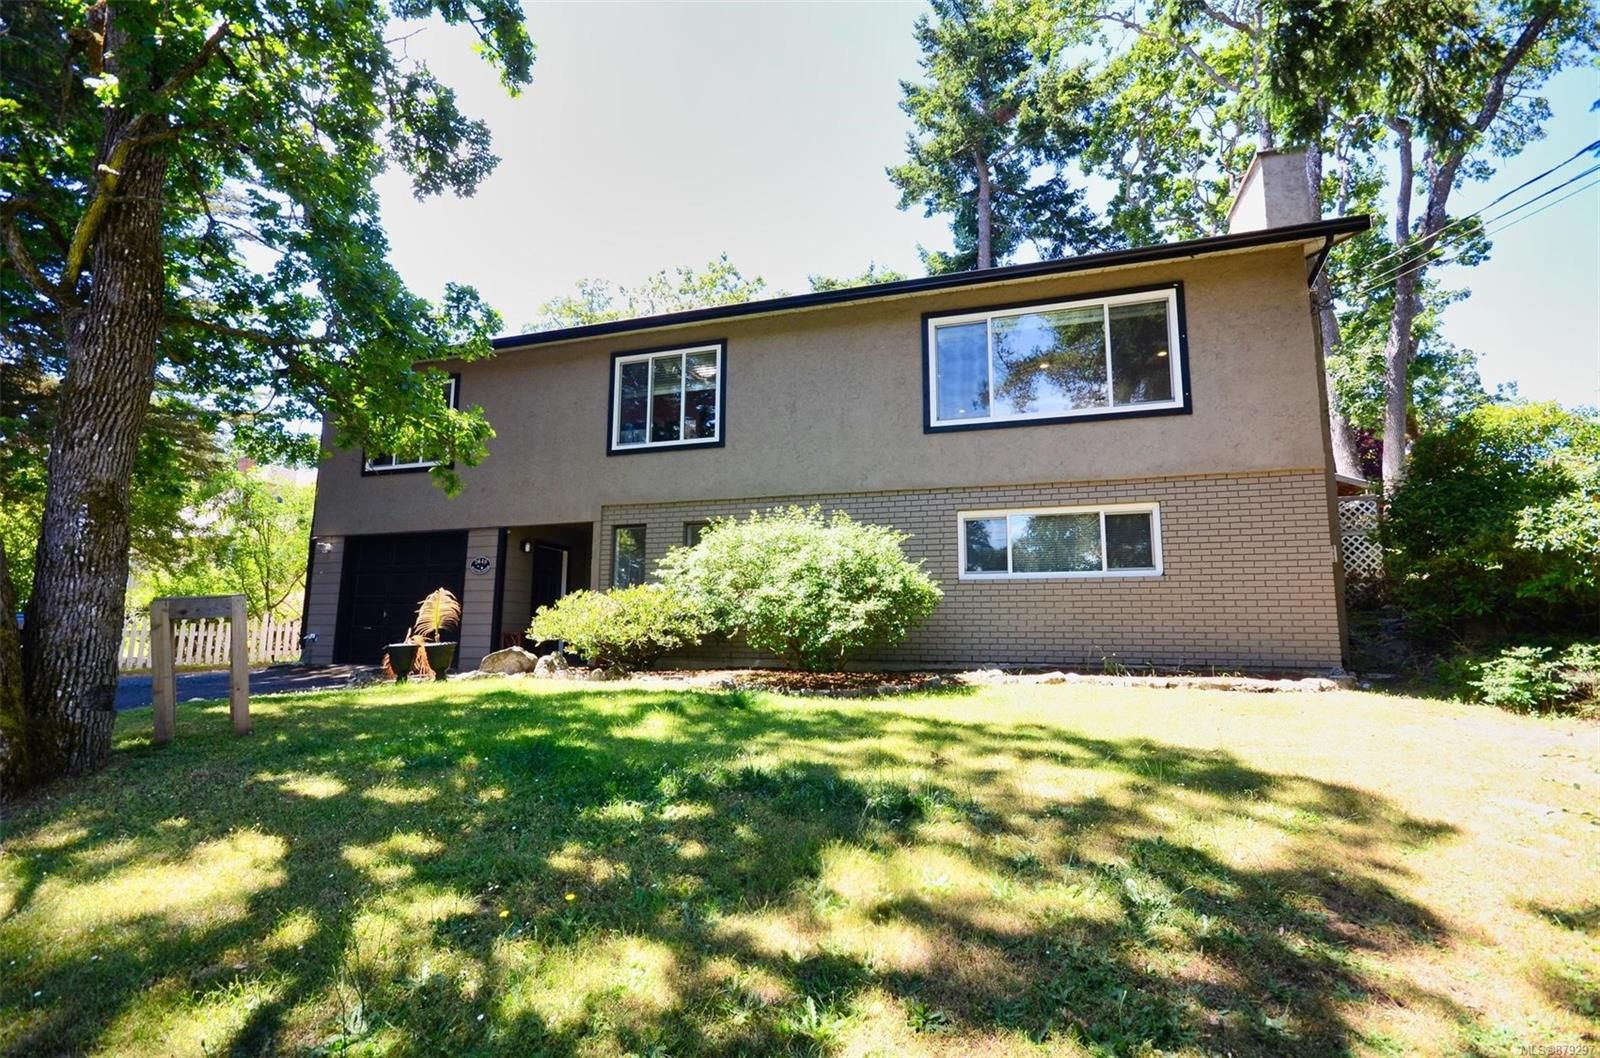 Main Photo: 3640 Blenkinsop Rd in : SE Maplewood House for sale (Saanich East)  : MLS®# 879297